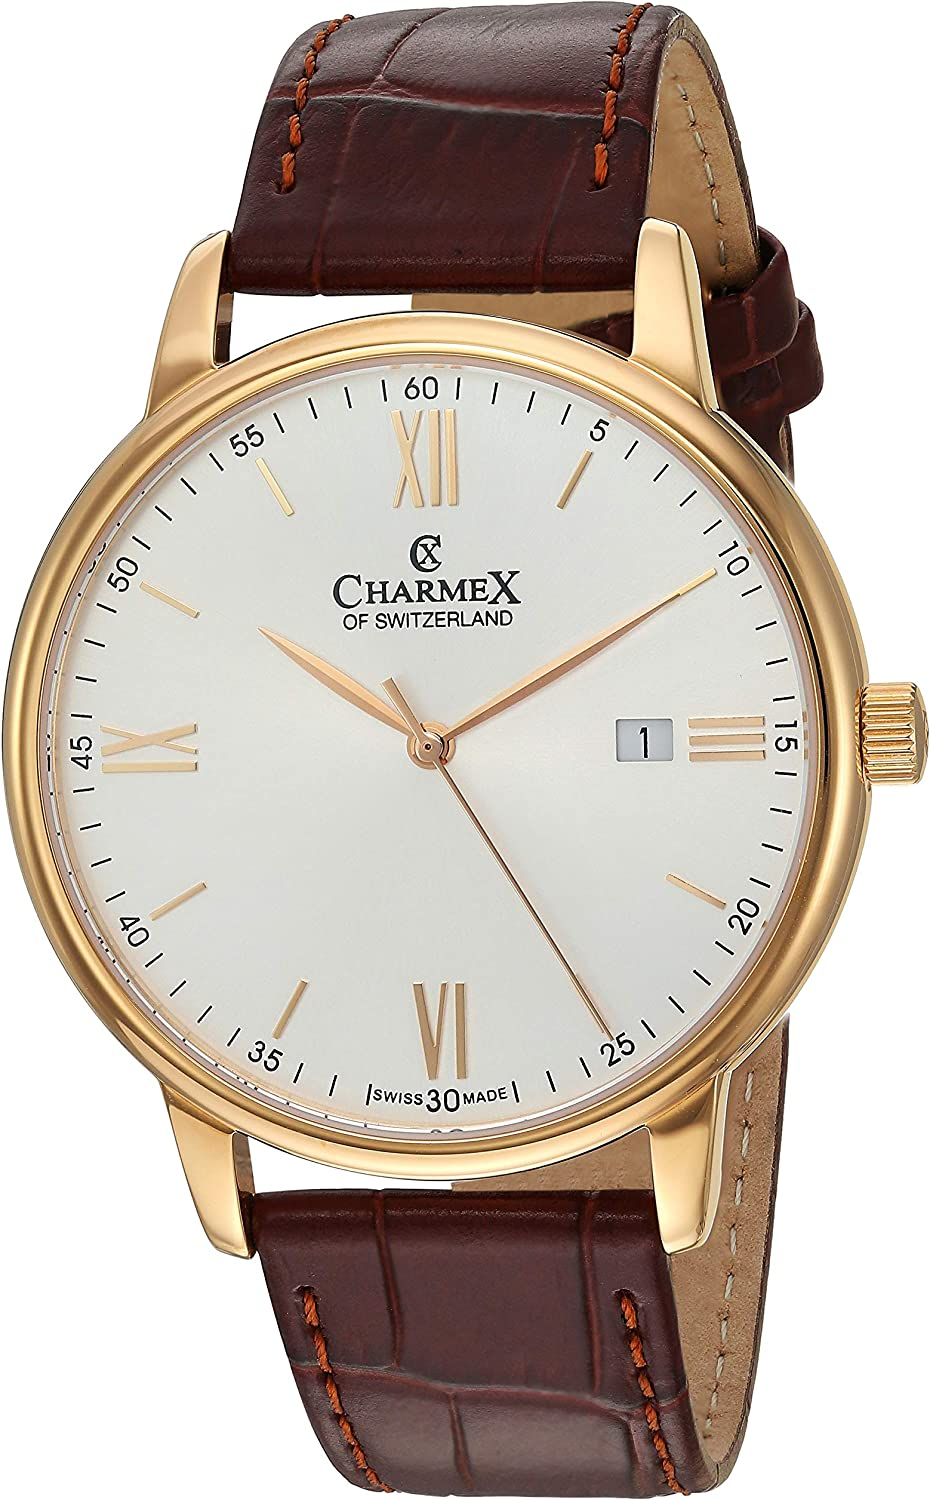 Charmex of Switzerland Charmex Amalfi Luxury Swiss Made Men's Watch Sapphire Crystal Brown Leather Strap 42mm Rose-Tone Stainless Steel Case CX-3030